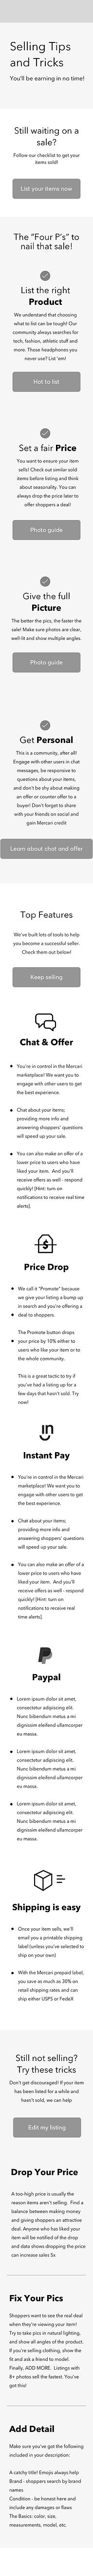 Landing Page 2 Mobile.png